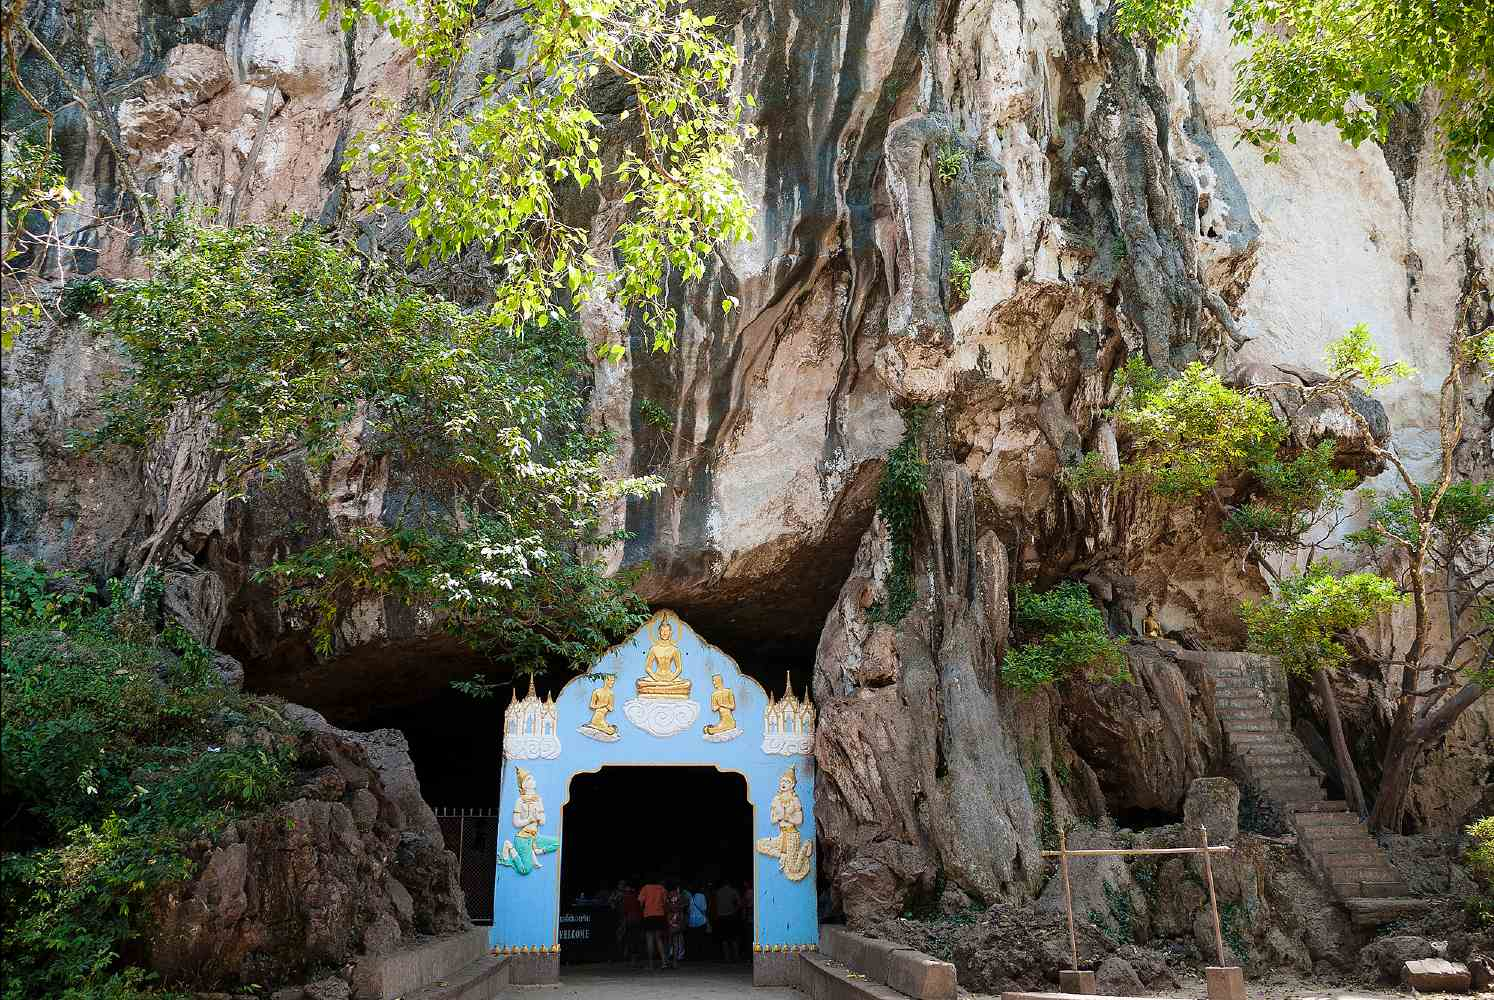 Opening in cave to the reclining Buddha